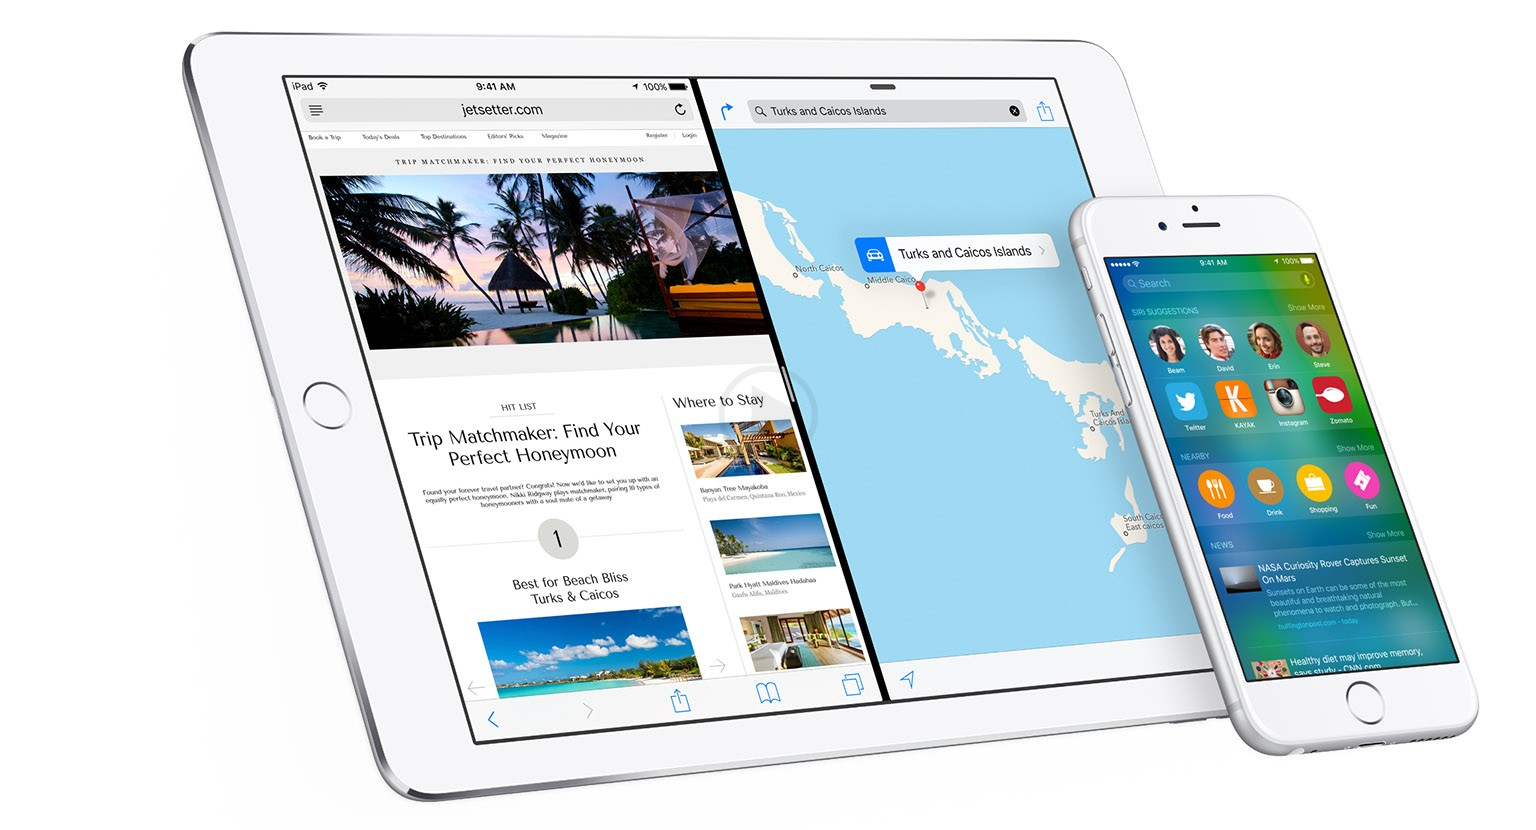 Apple Confirms The Launch Of iOS 9.3